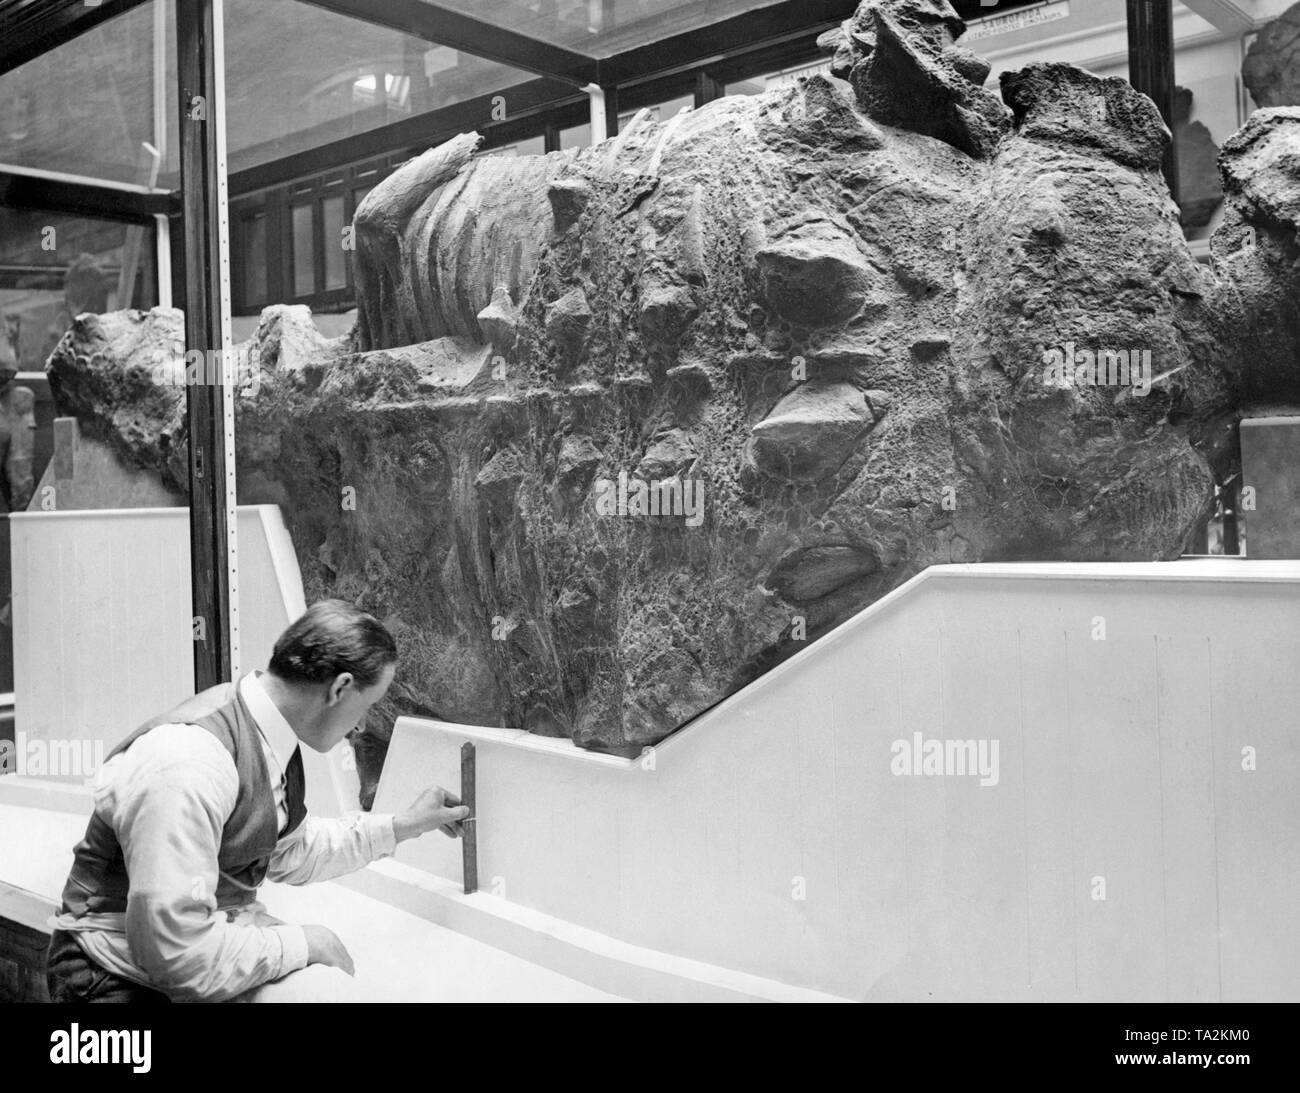 This armored dinosaur at the Natural History Museum in London was considered one of the most valuable of its kind. It comes from the Belly River Formation on the Red River in Alberta, Canada. - Stock Image